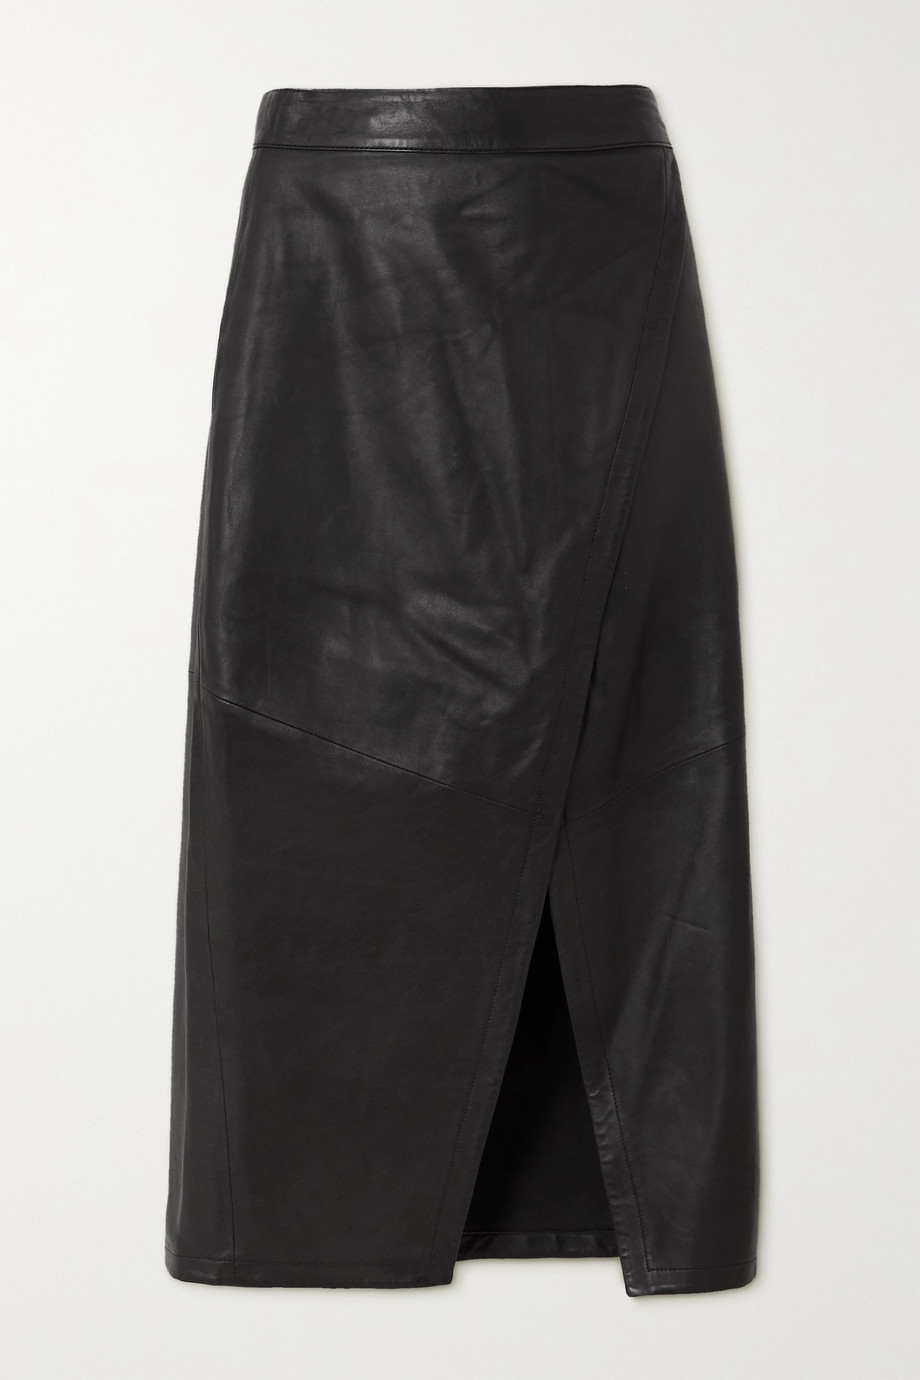 ENVELOPE1976 Hurum leather wrap midi skirt